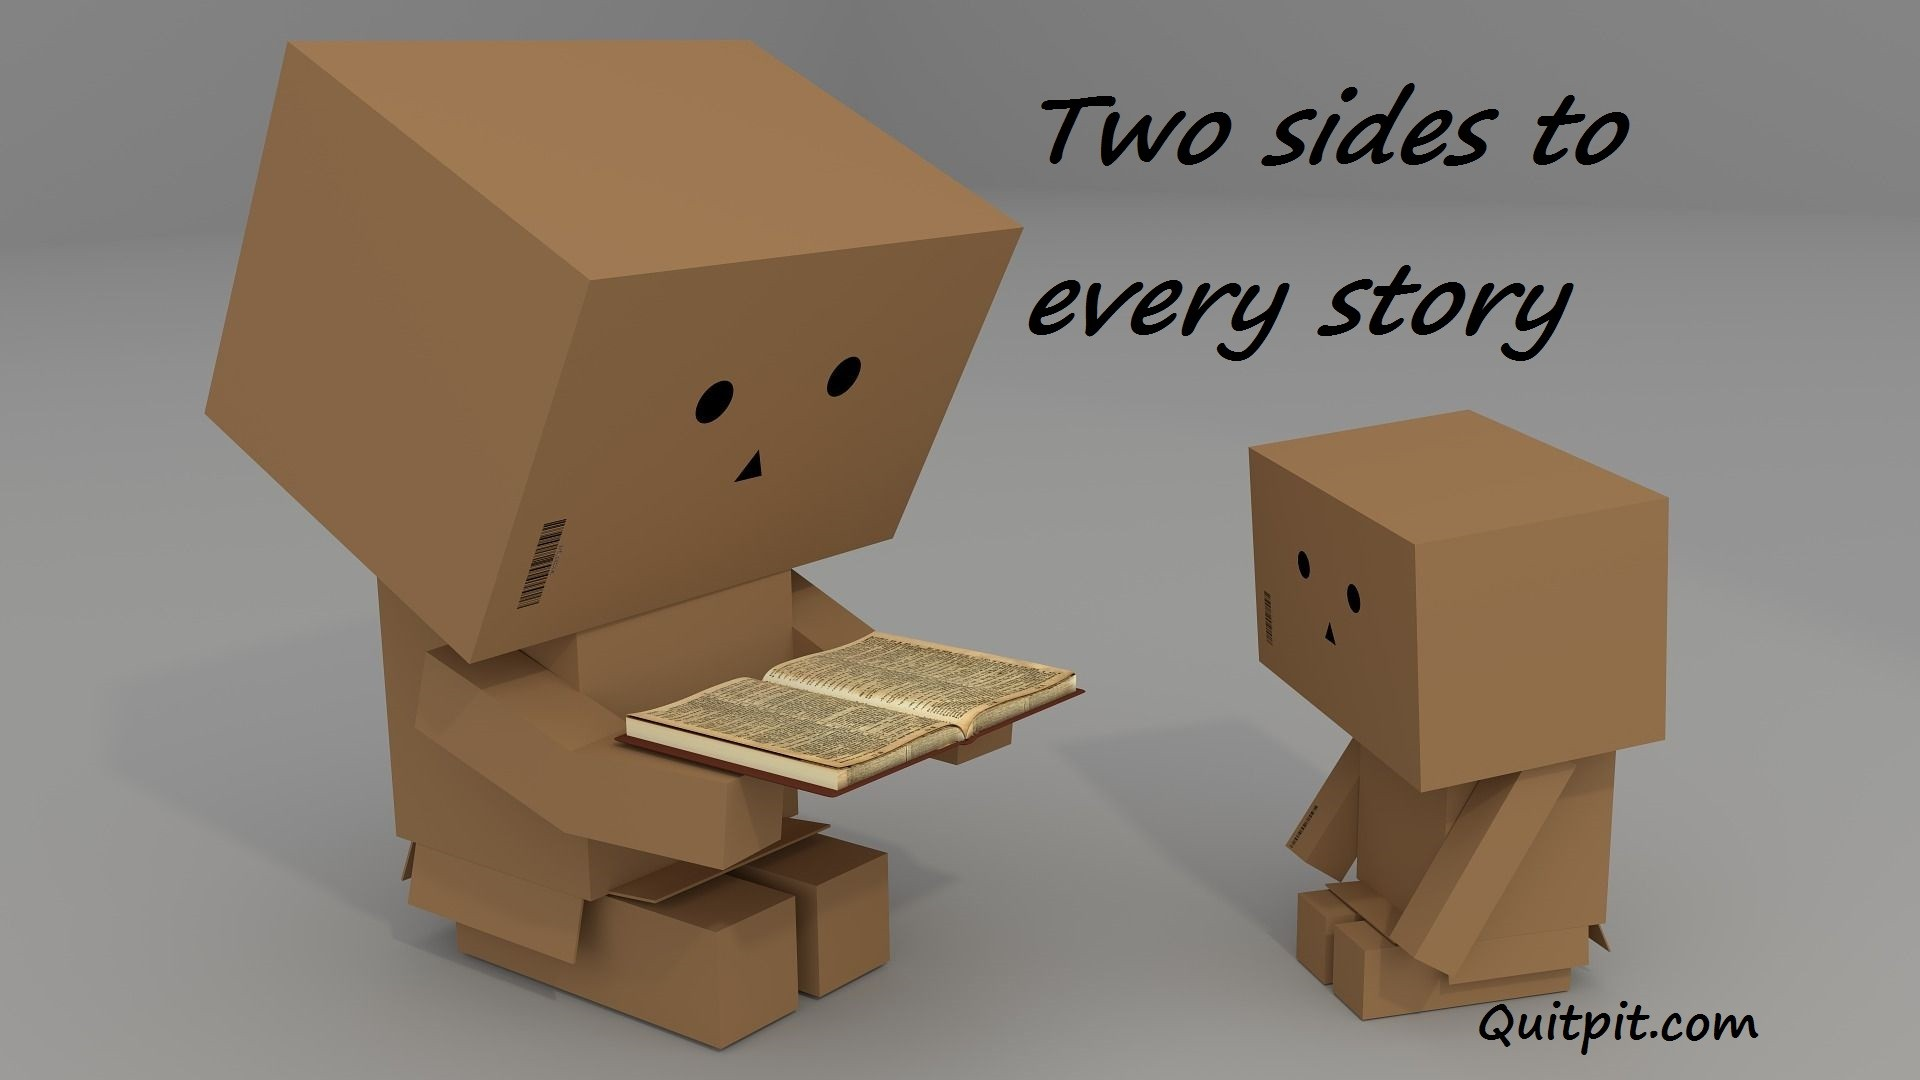 two sides to every story, inspirational story